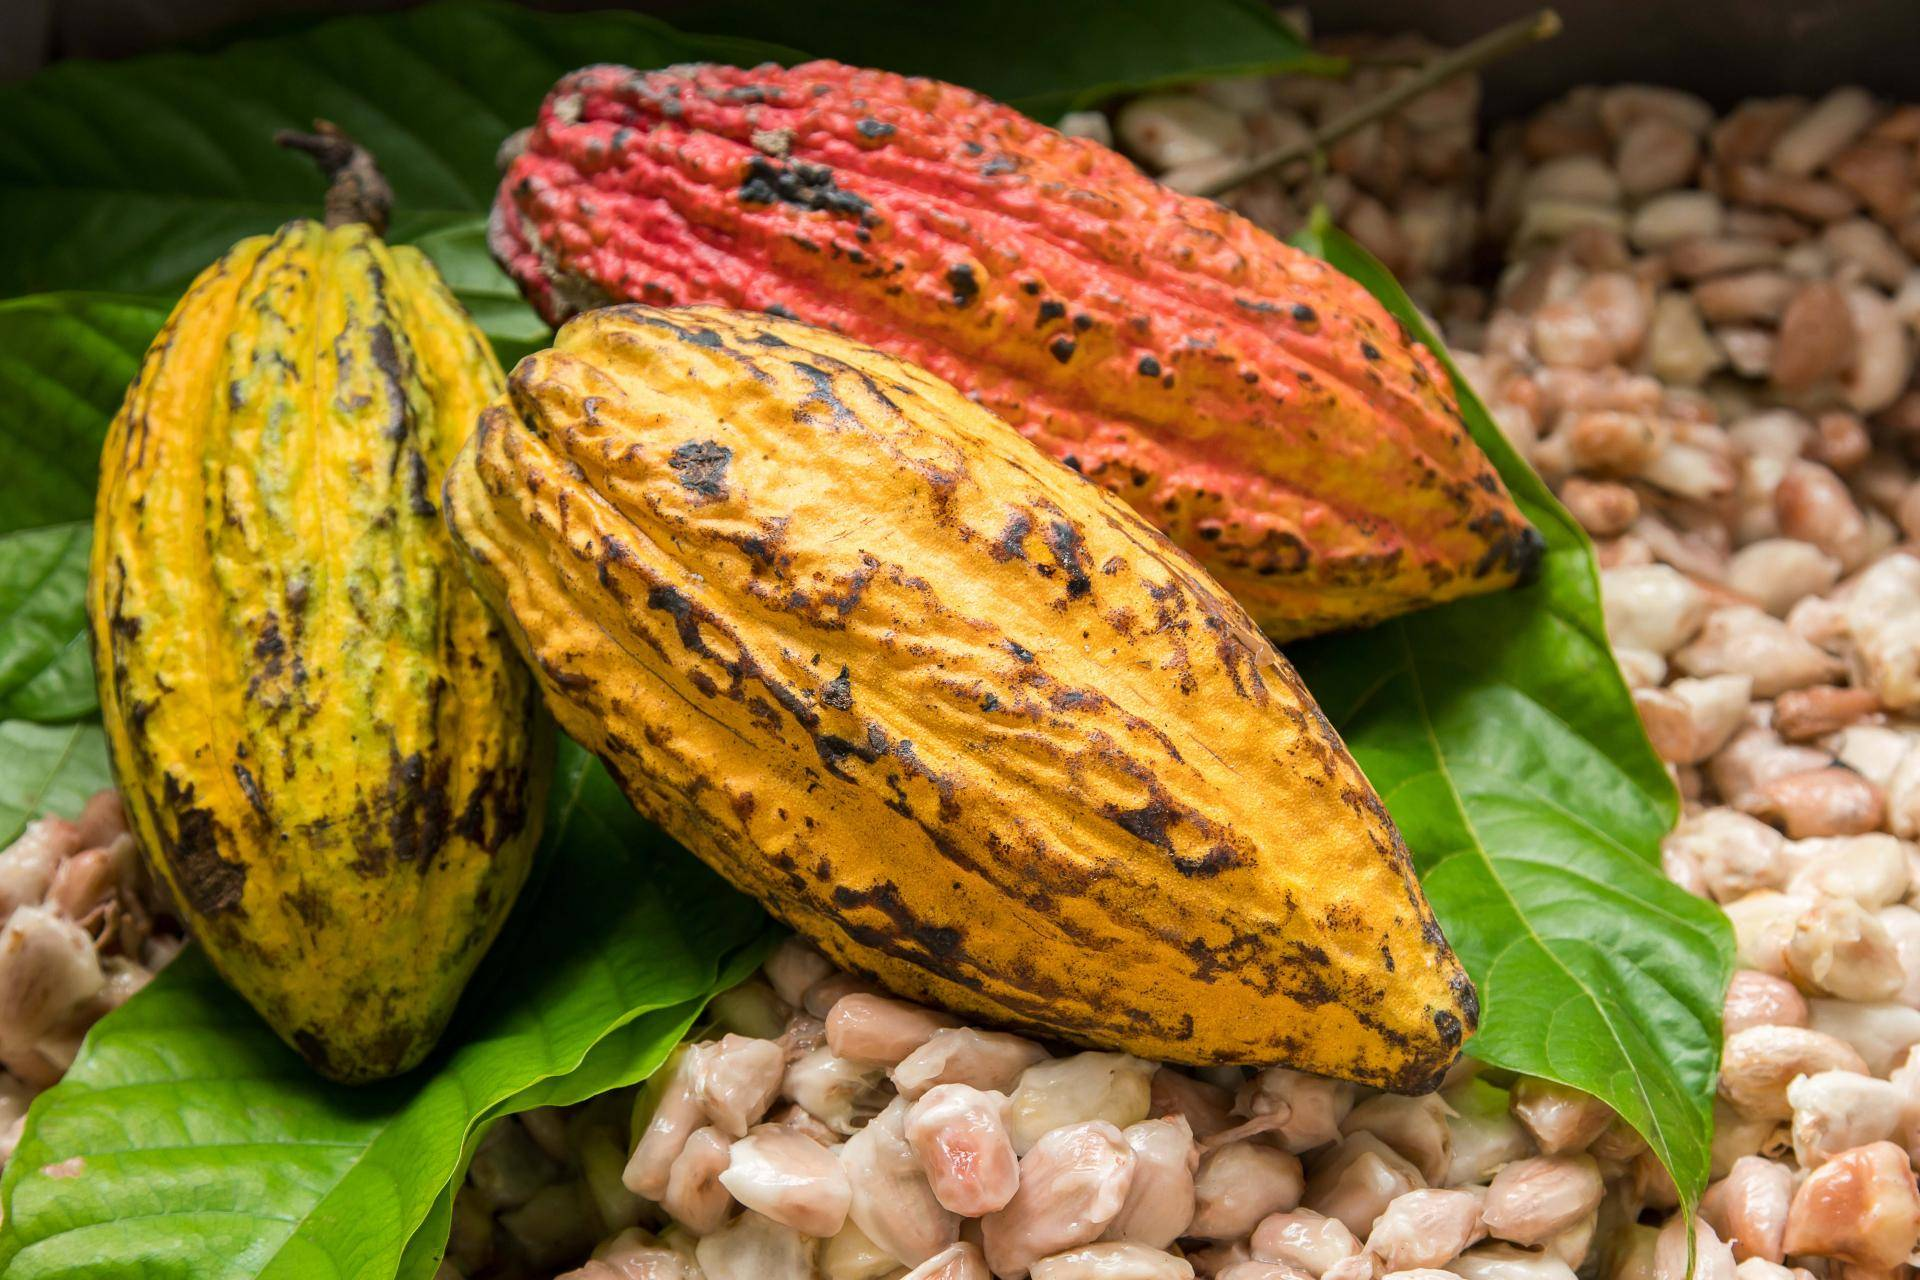 'Nigeria can export $3bn worth of cocoa derivatives through AfCFTA'